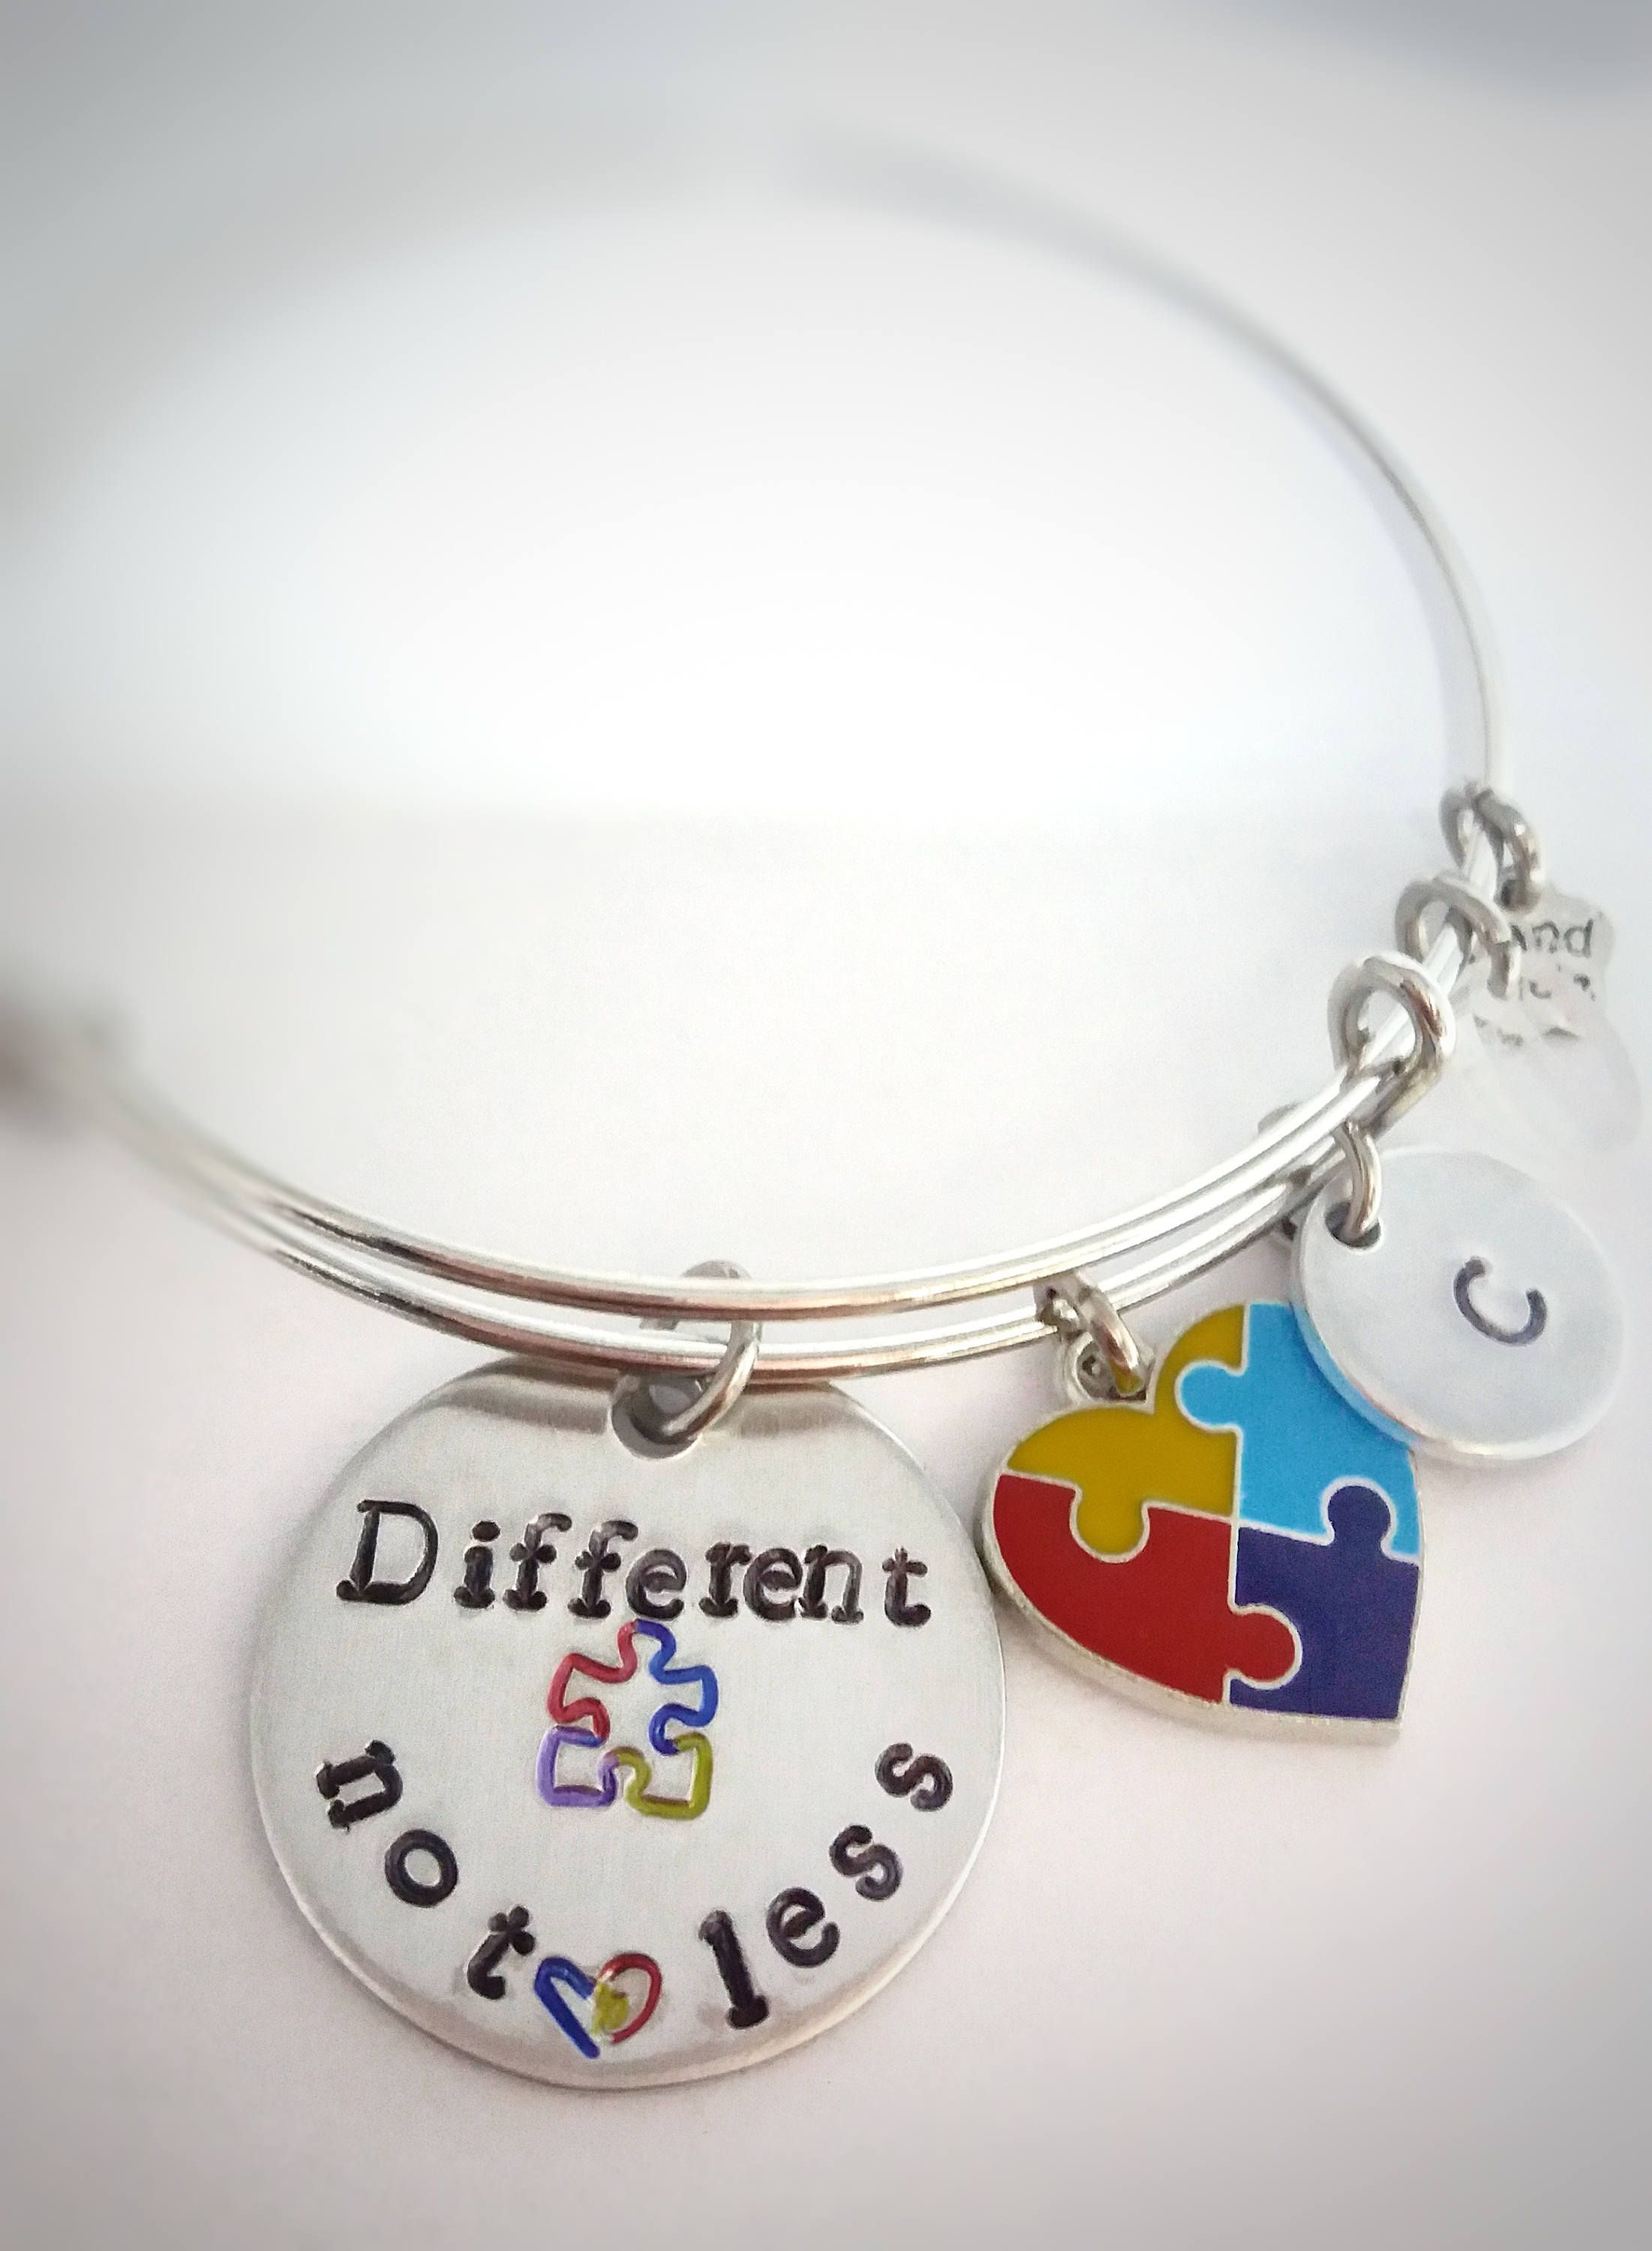 c bracelet awareness novelty j autism k